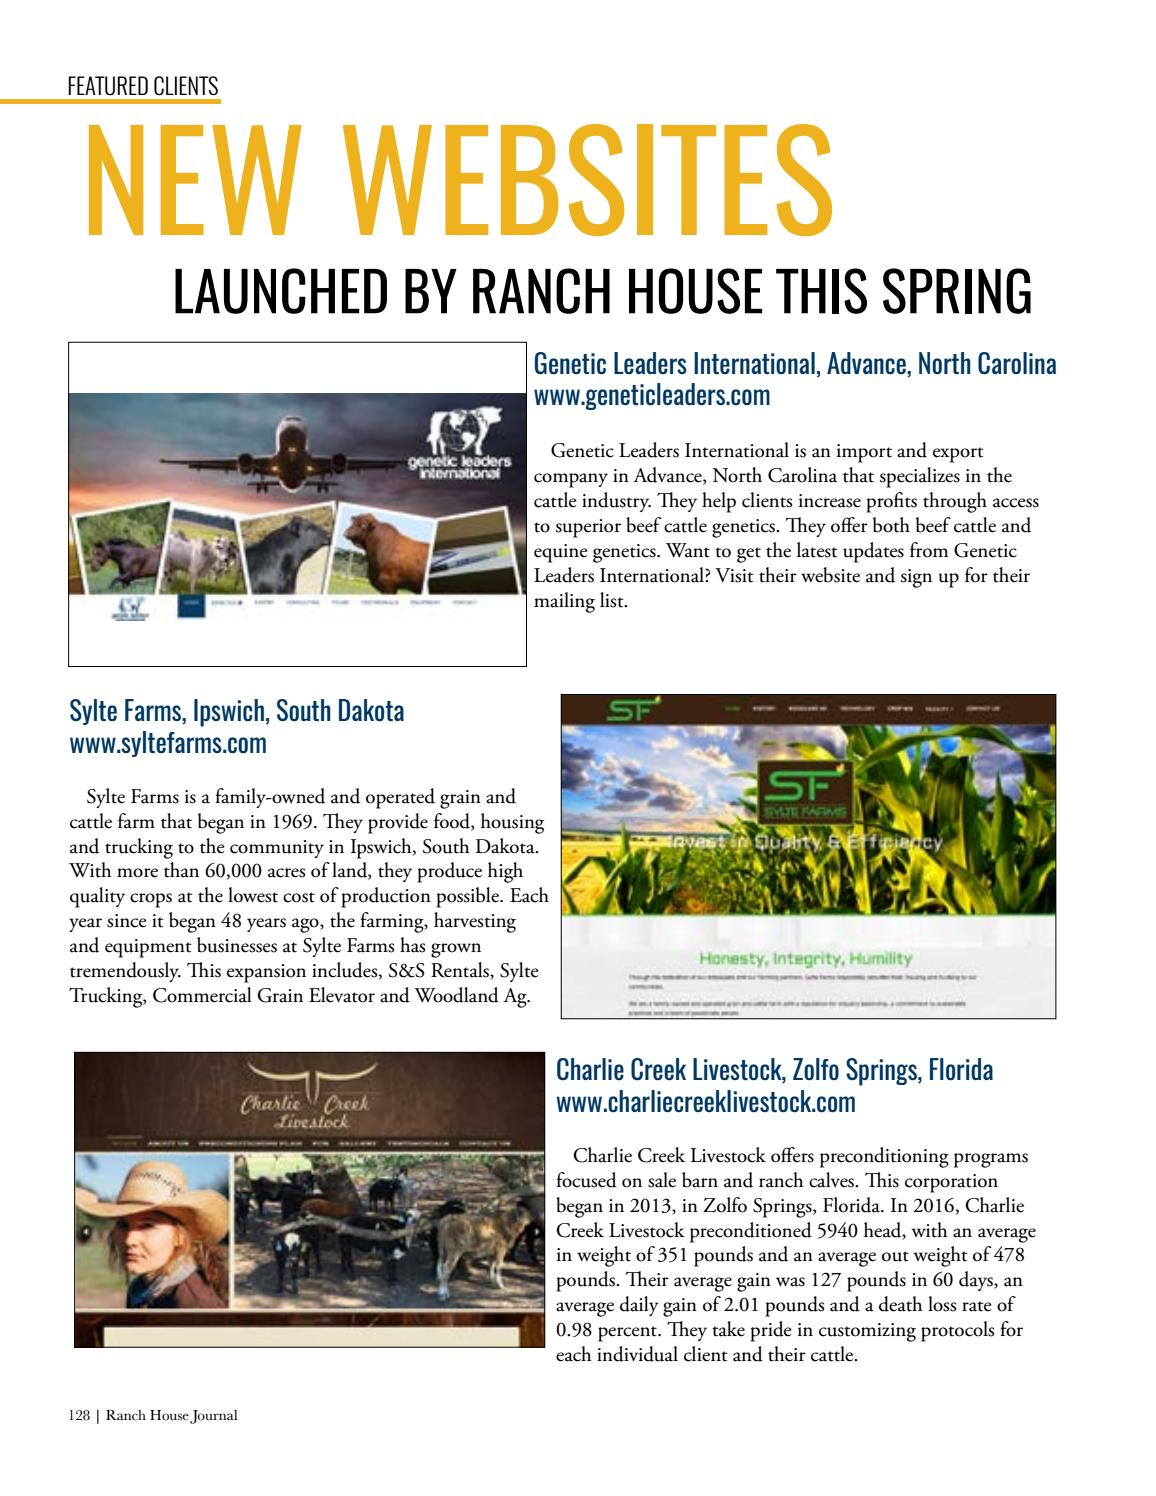 Summer 2017 Ranch House Journal by Ranch House Designs - issuu on bungalow designs, ranch land, mansion designs, stone building designs, ranch bathroom, townhouse designs, antique shop designs, ranch interior design, farmhouse designs, ranch painting, dormer designs, ranch photography, ranch houses with stone fronts, ranch art,